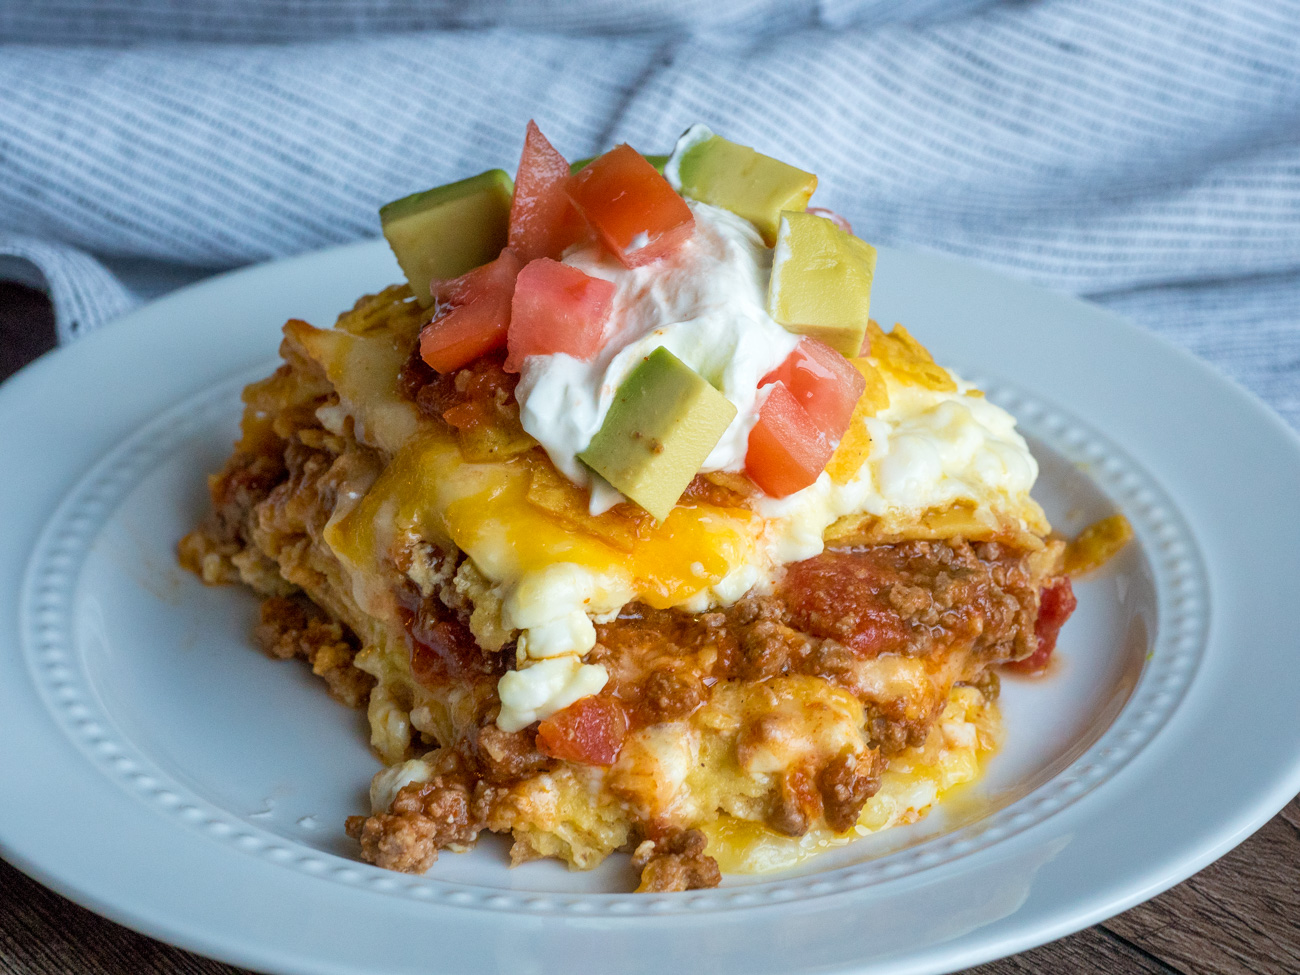 Bake for 30 minutes or until bubbly. Let cool for 5 minutes before topping with tortilla chips, avocado chunks, diced tomato, and salsa. Serve up hot and enjoy!